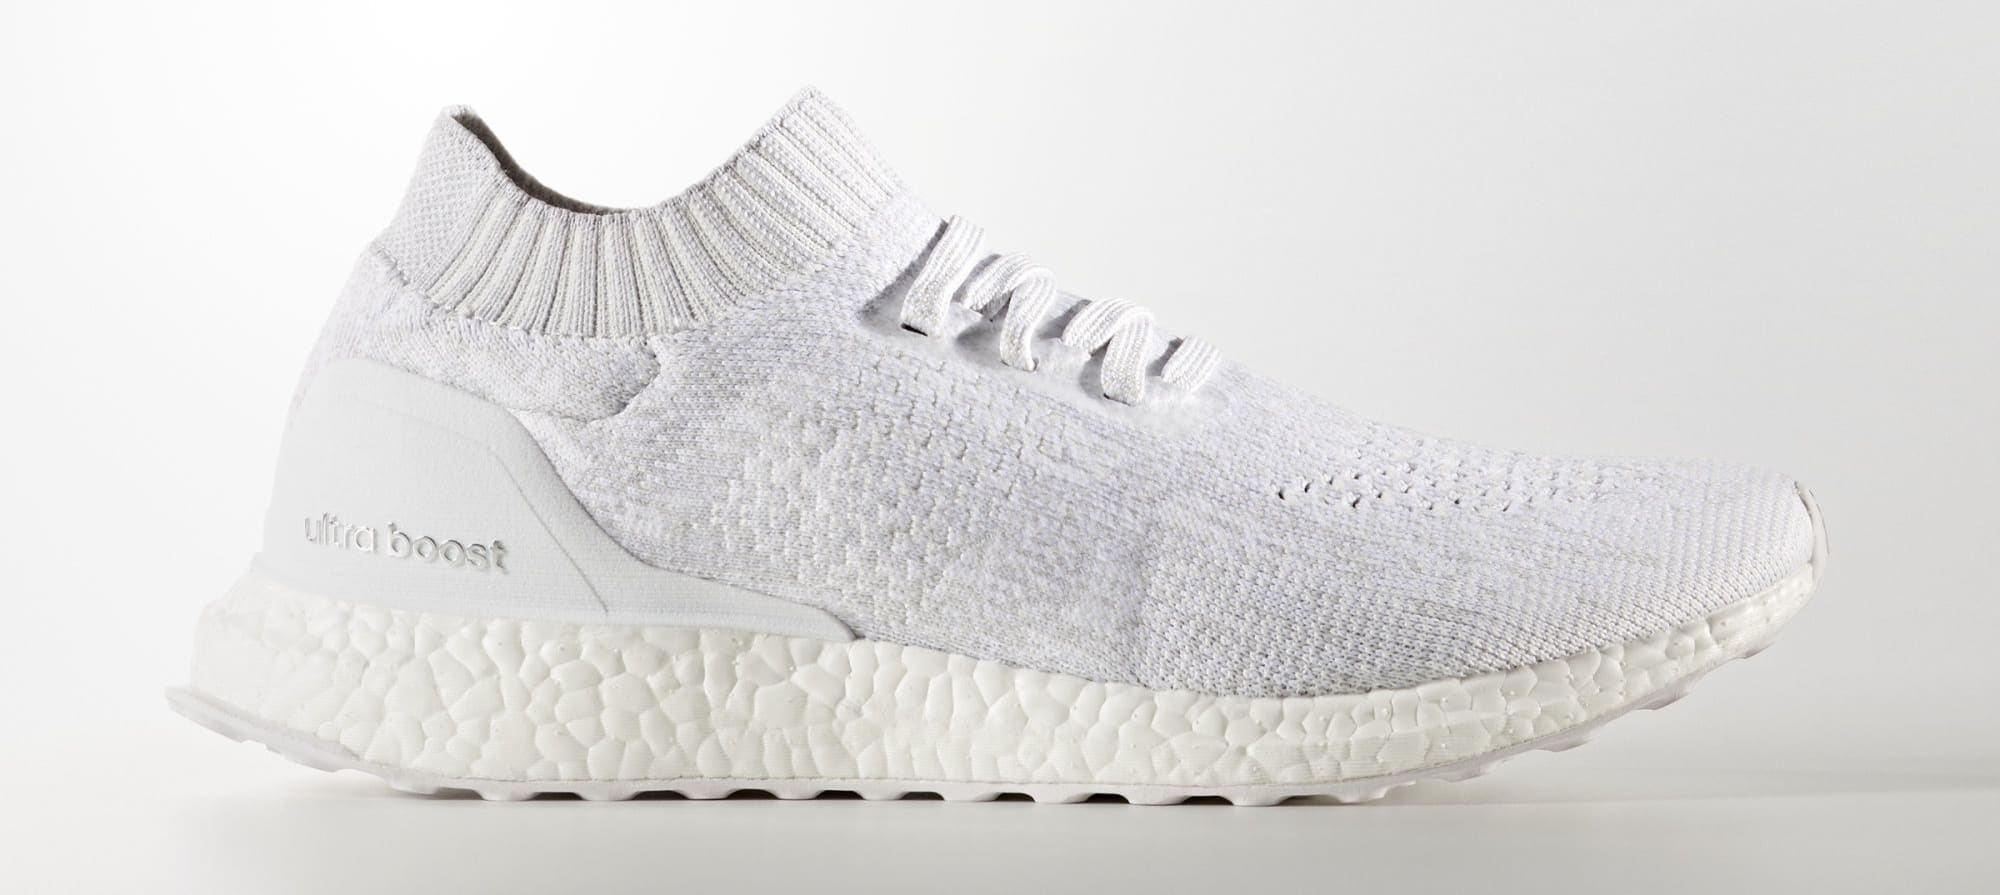 new arrival 775e8 4532f ... coupon code for adidas parley ultra boost adidas ultra boost uncaged  6f4e6 d9197